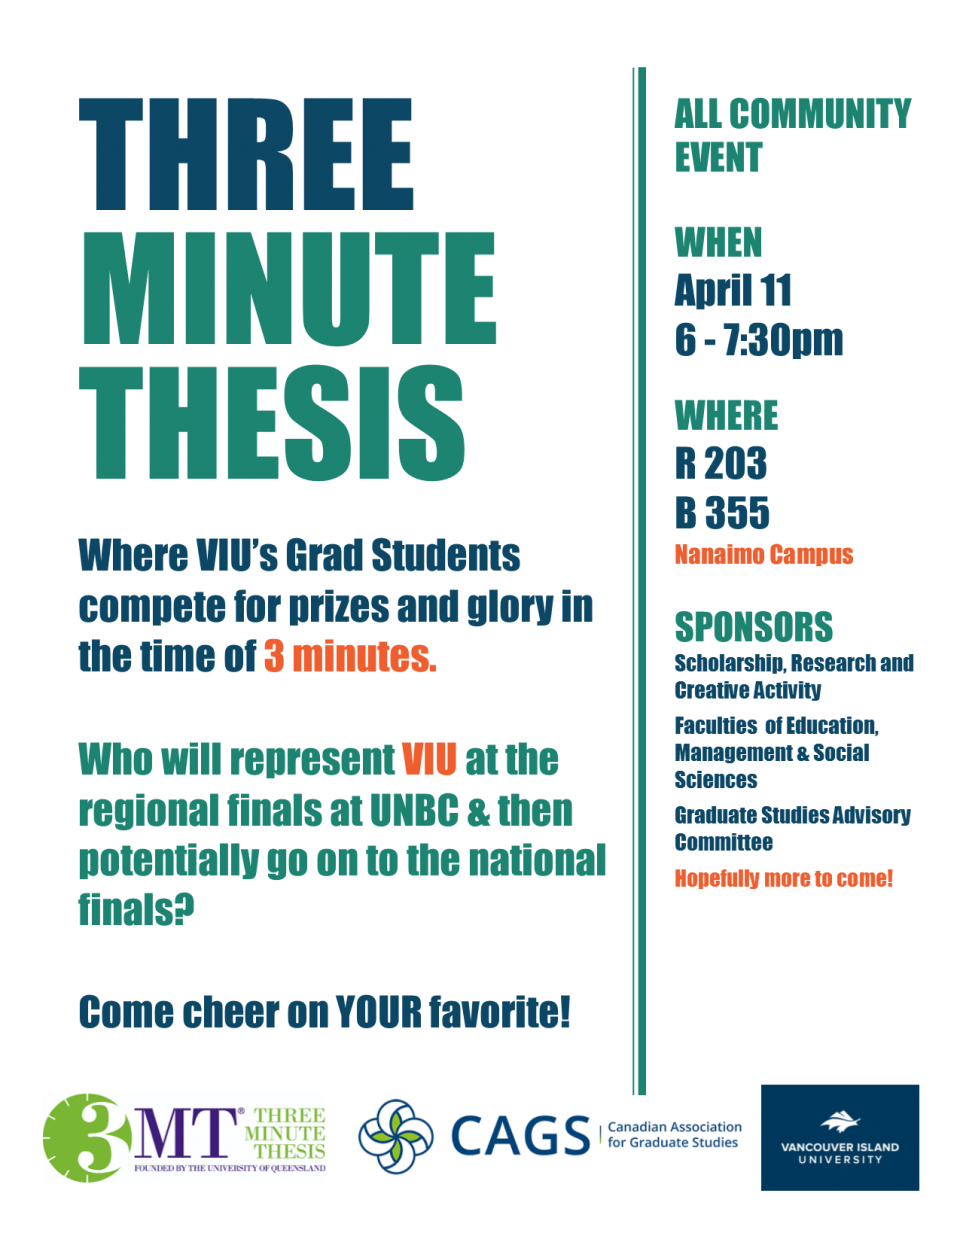 Info poster on VIU's Three Minute Thesis competition